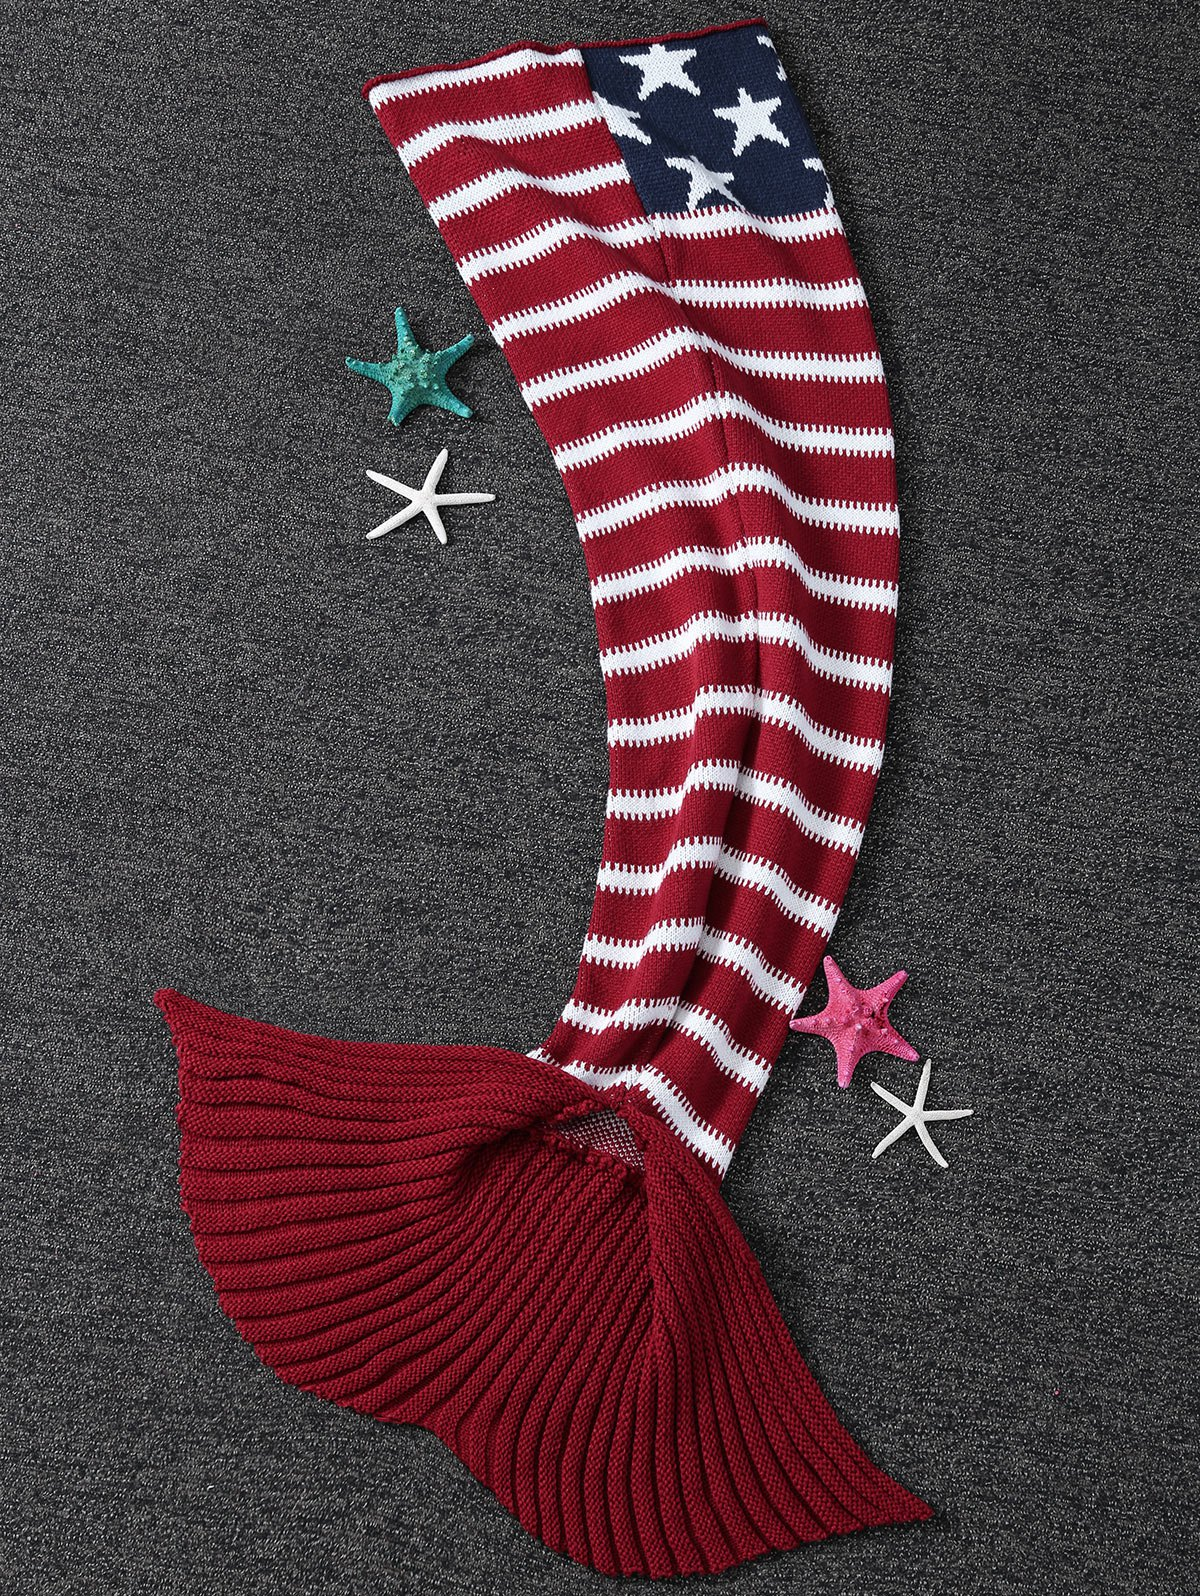 2018 Comfortable American Flag Pattern Knitted Mermaid Tail Blanket ...